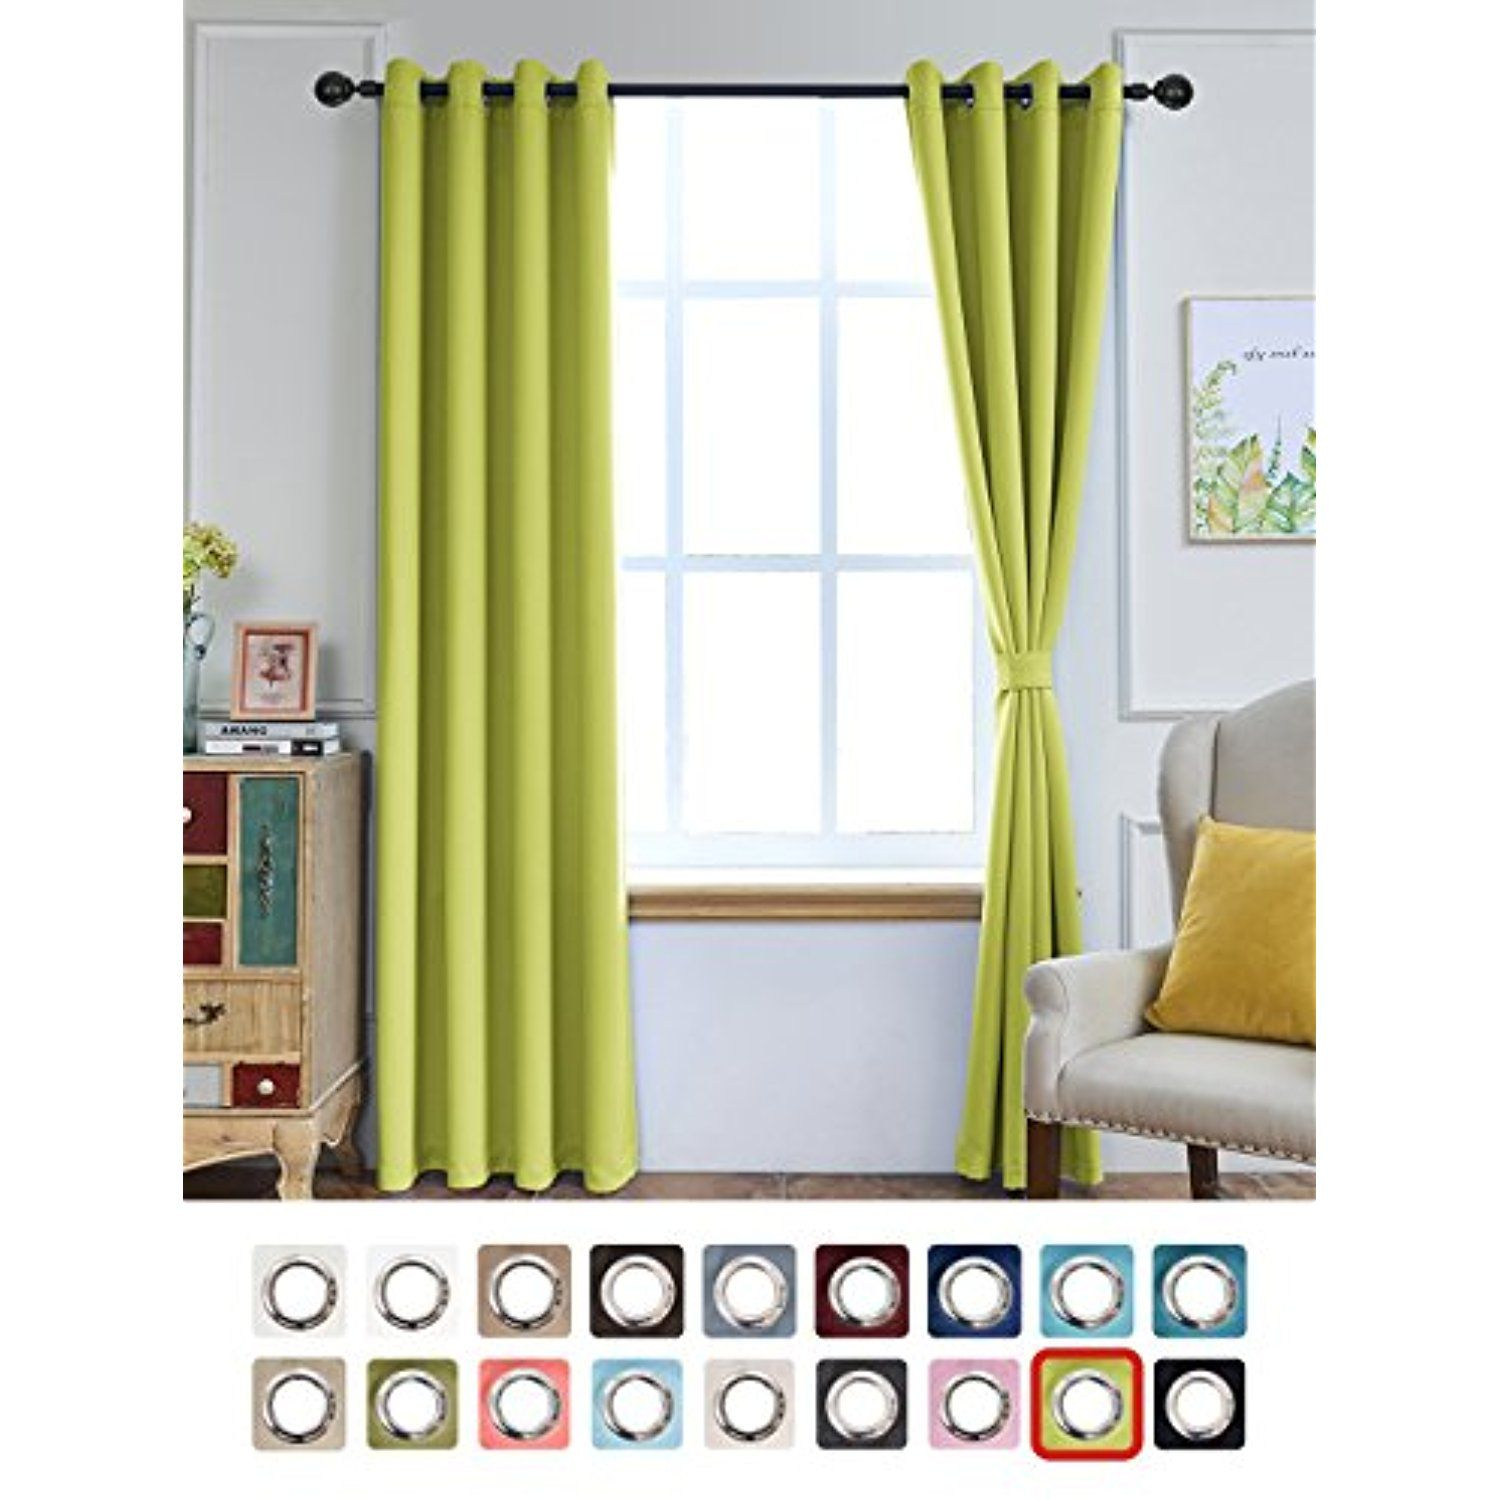 faqs overstock curtain thermal curtains insulated chubs guides about com